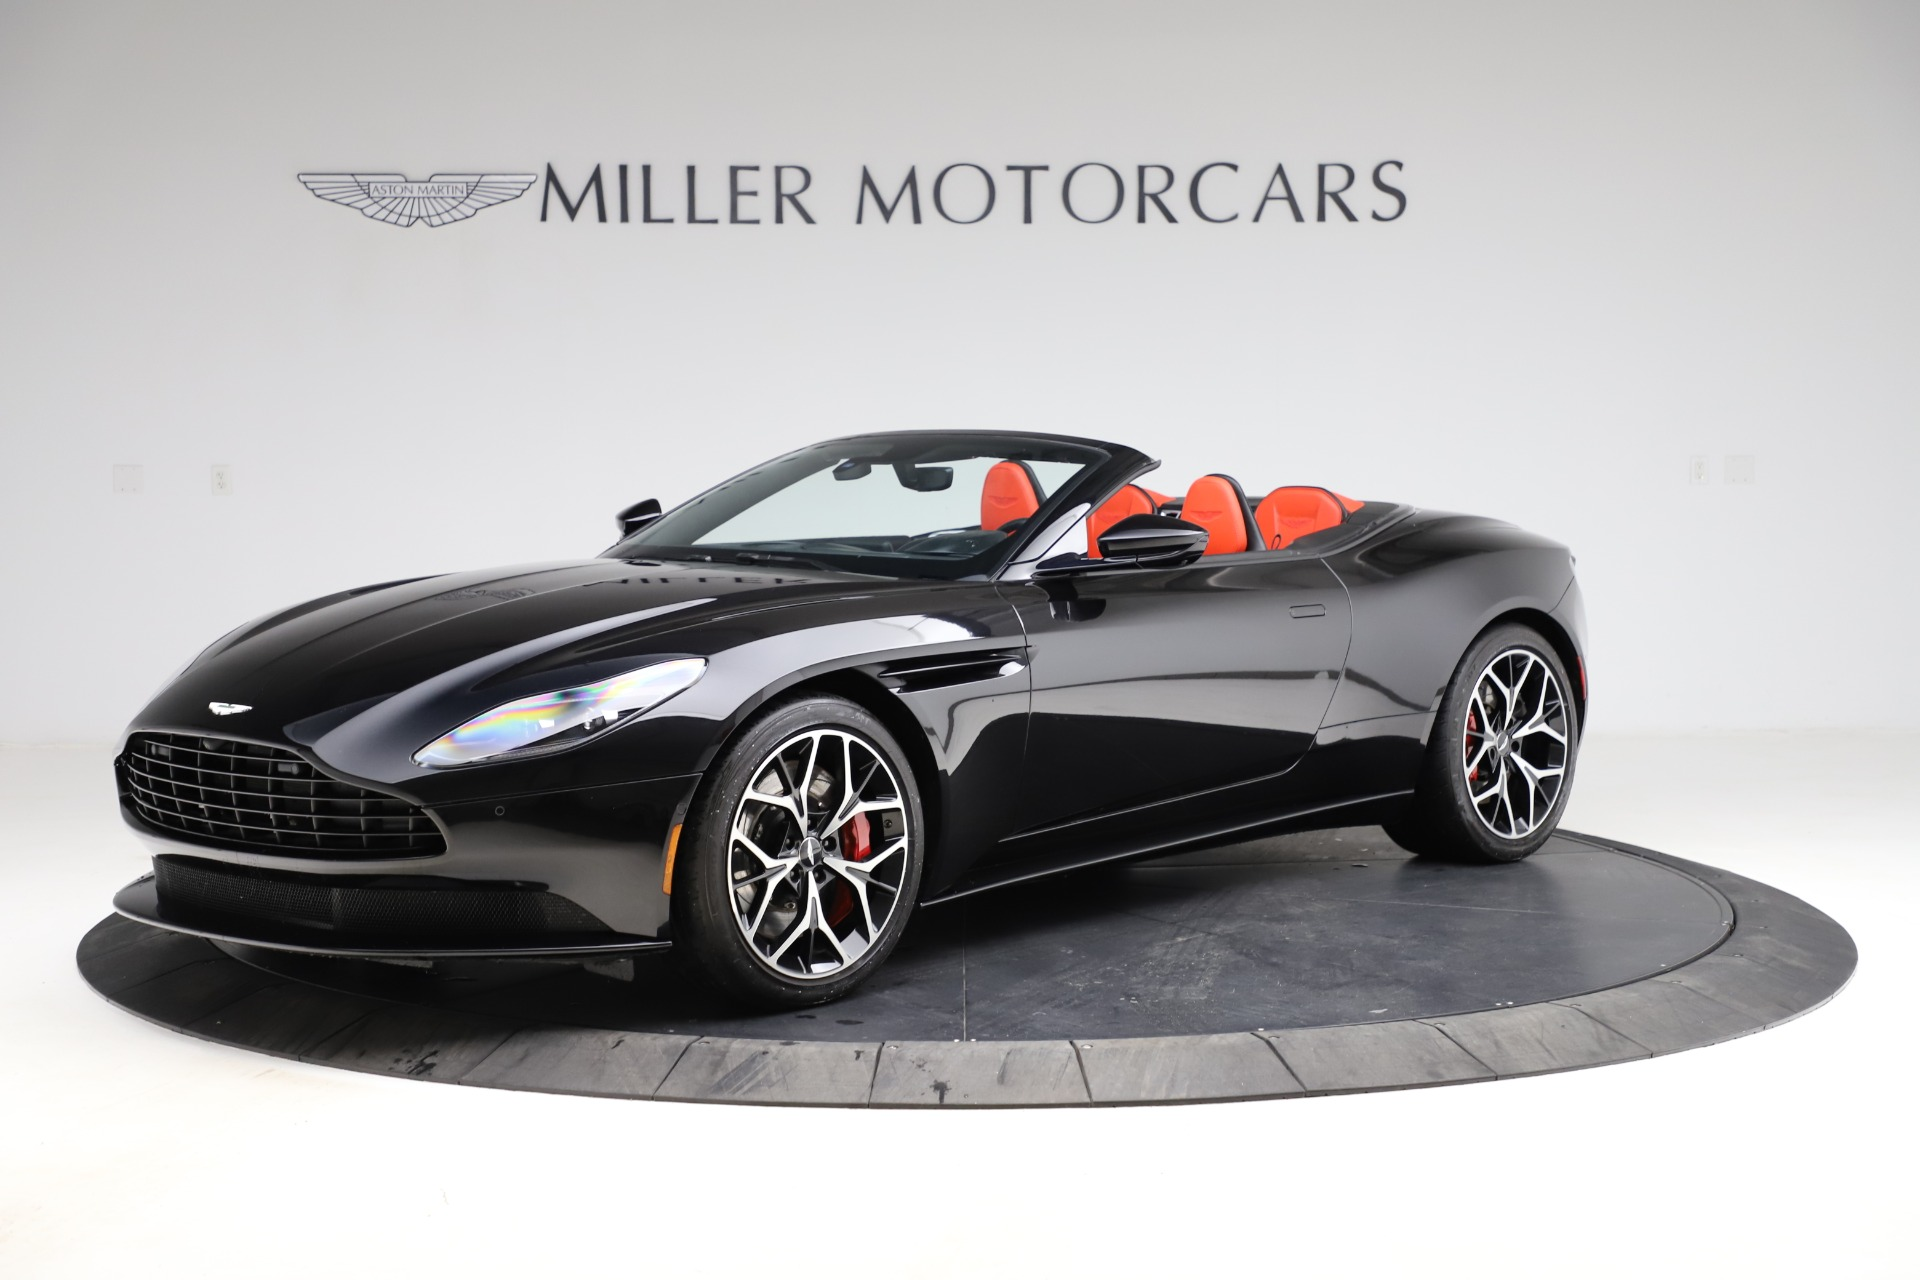 Used 2019 Aston Martin DB11 Volante Volante for sale $204,900 at Rolls-Royce Motor Cars Greenwich in Greenwich CT 06830 1